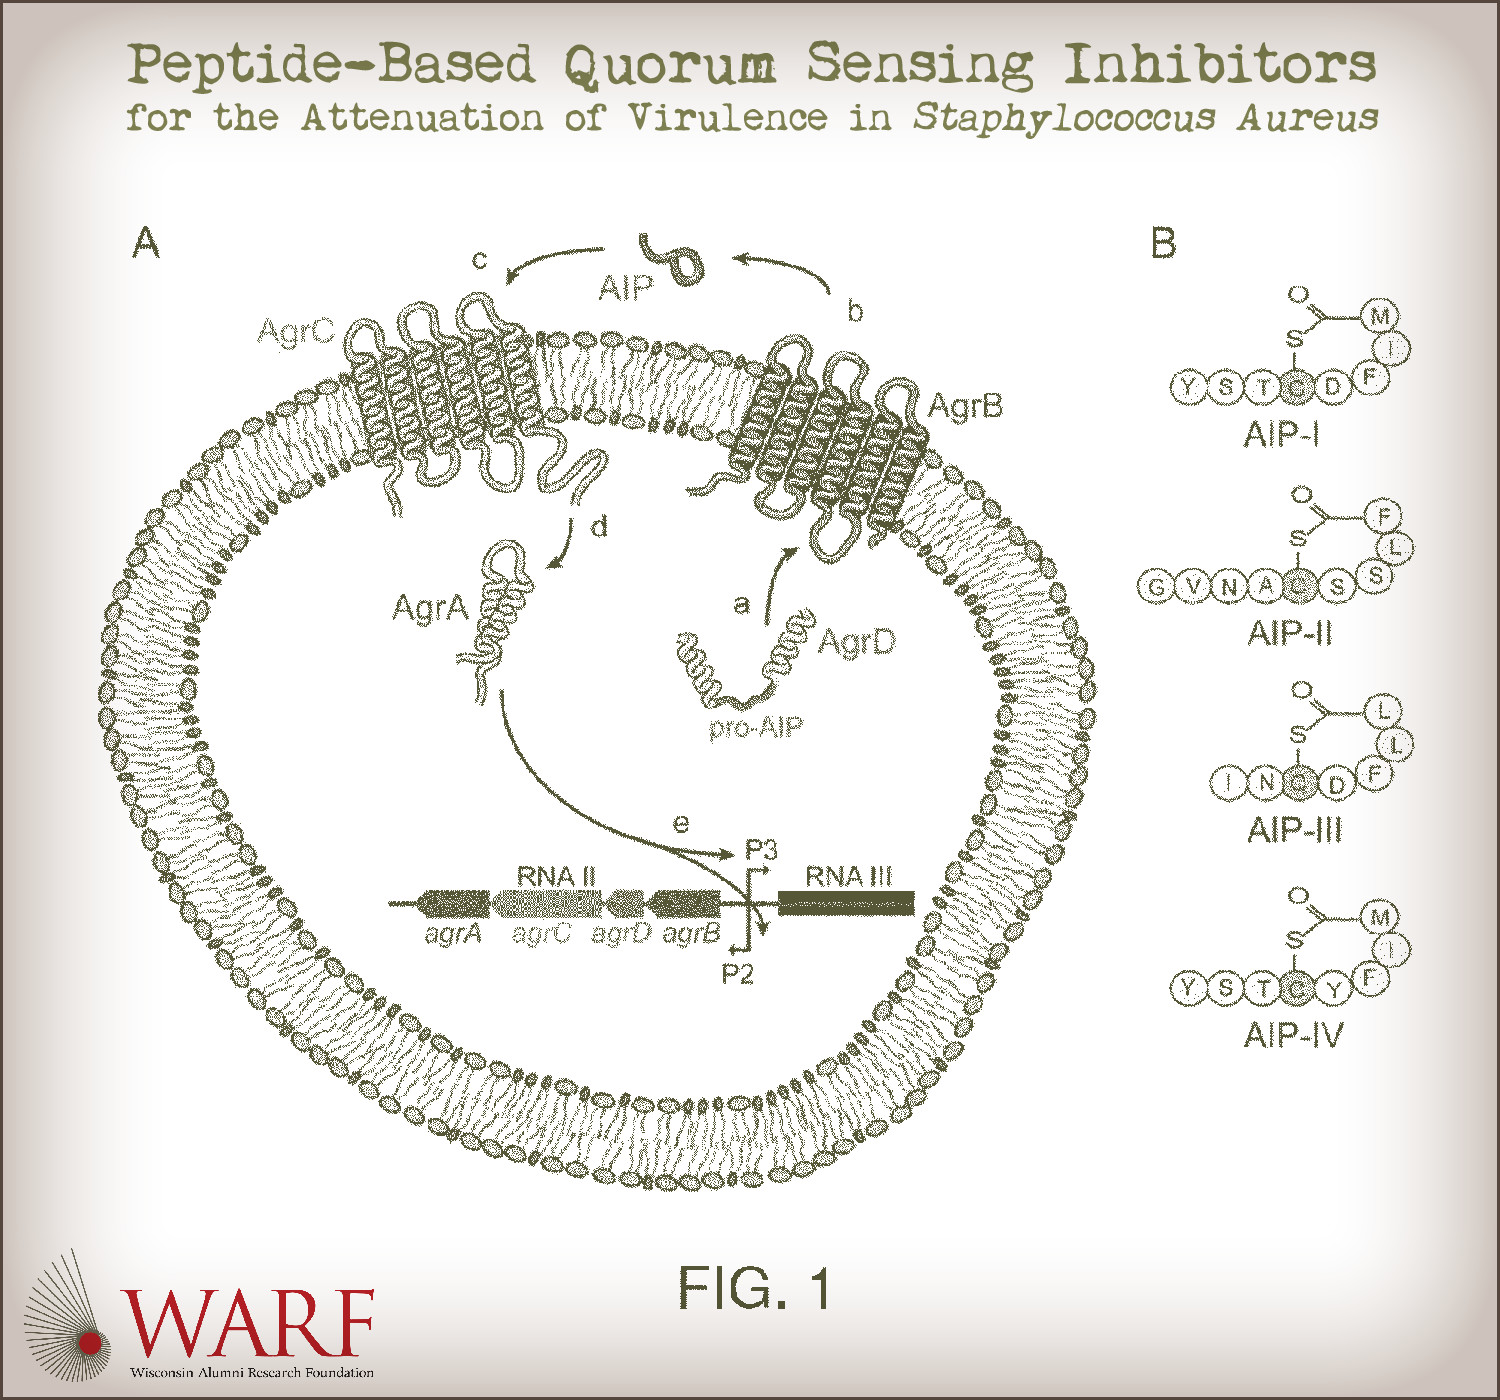 patent drawing of circular arrangement of dna rna etc and title all